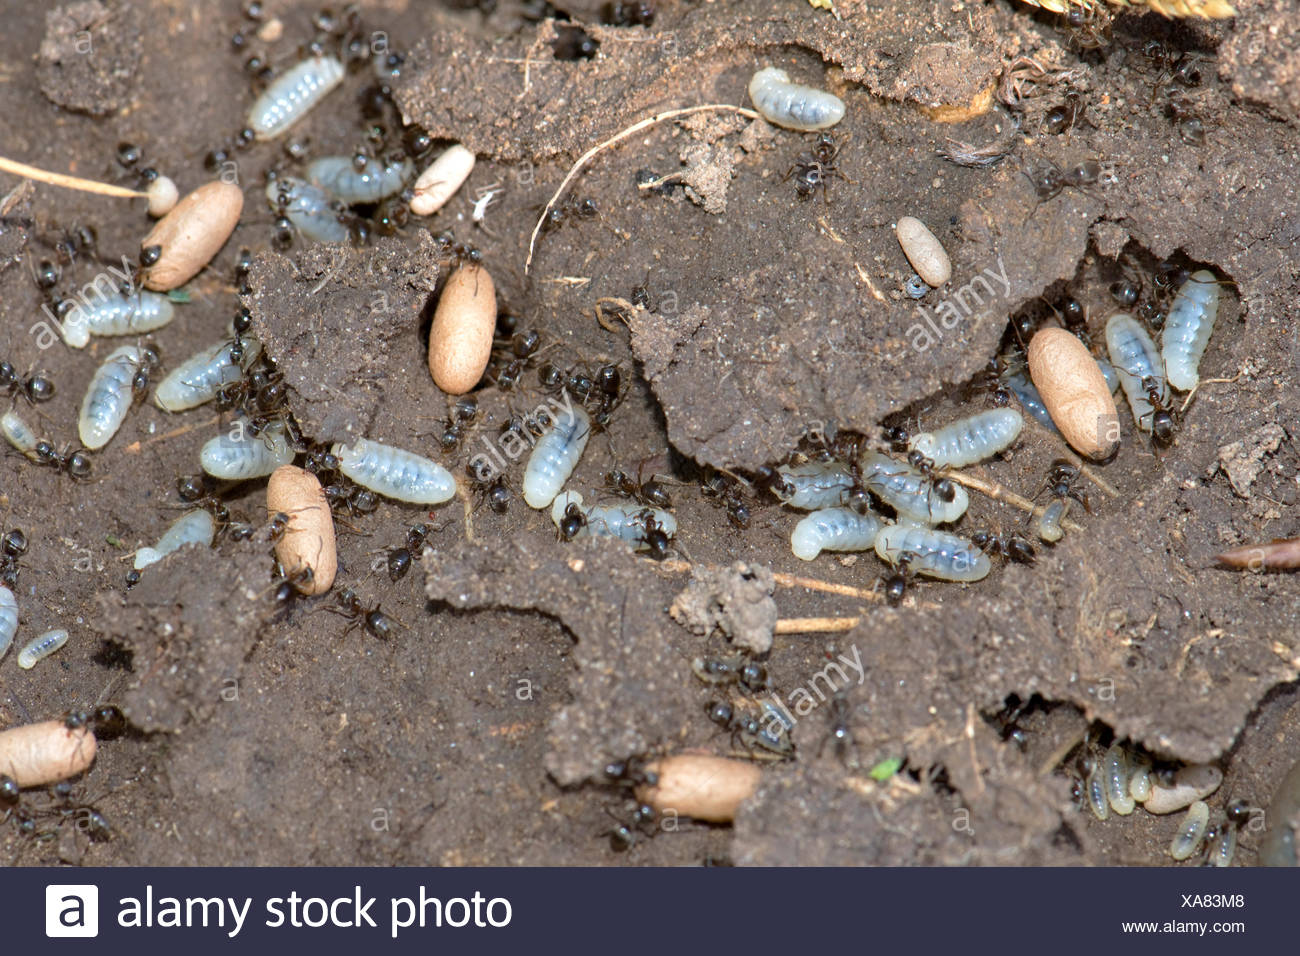 Exposed nest of black garden ants, Lasius niger, with workers, larvae and cocoons in tunnels - Stock Image